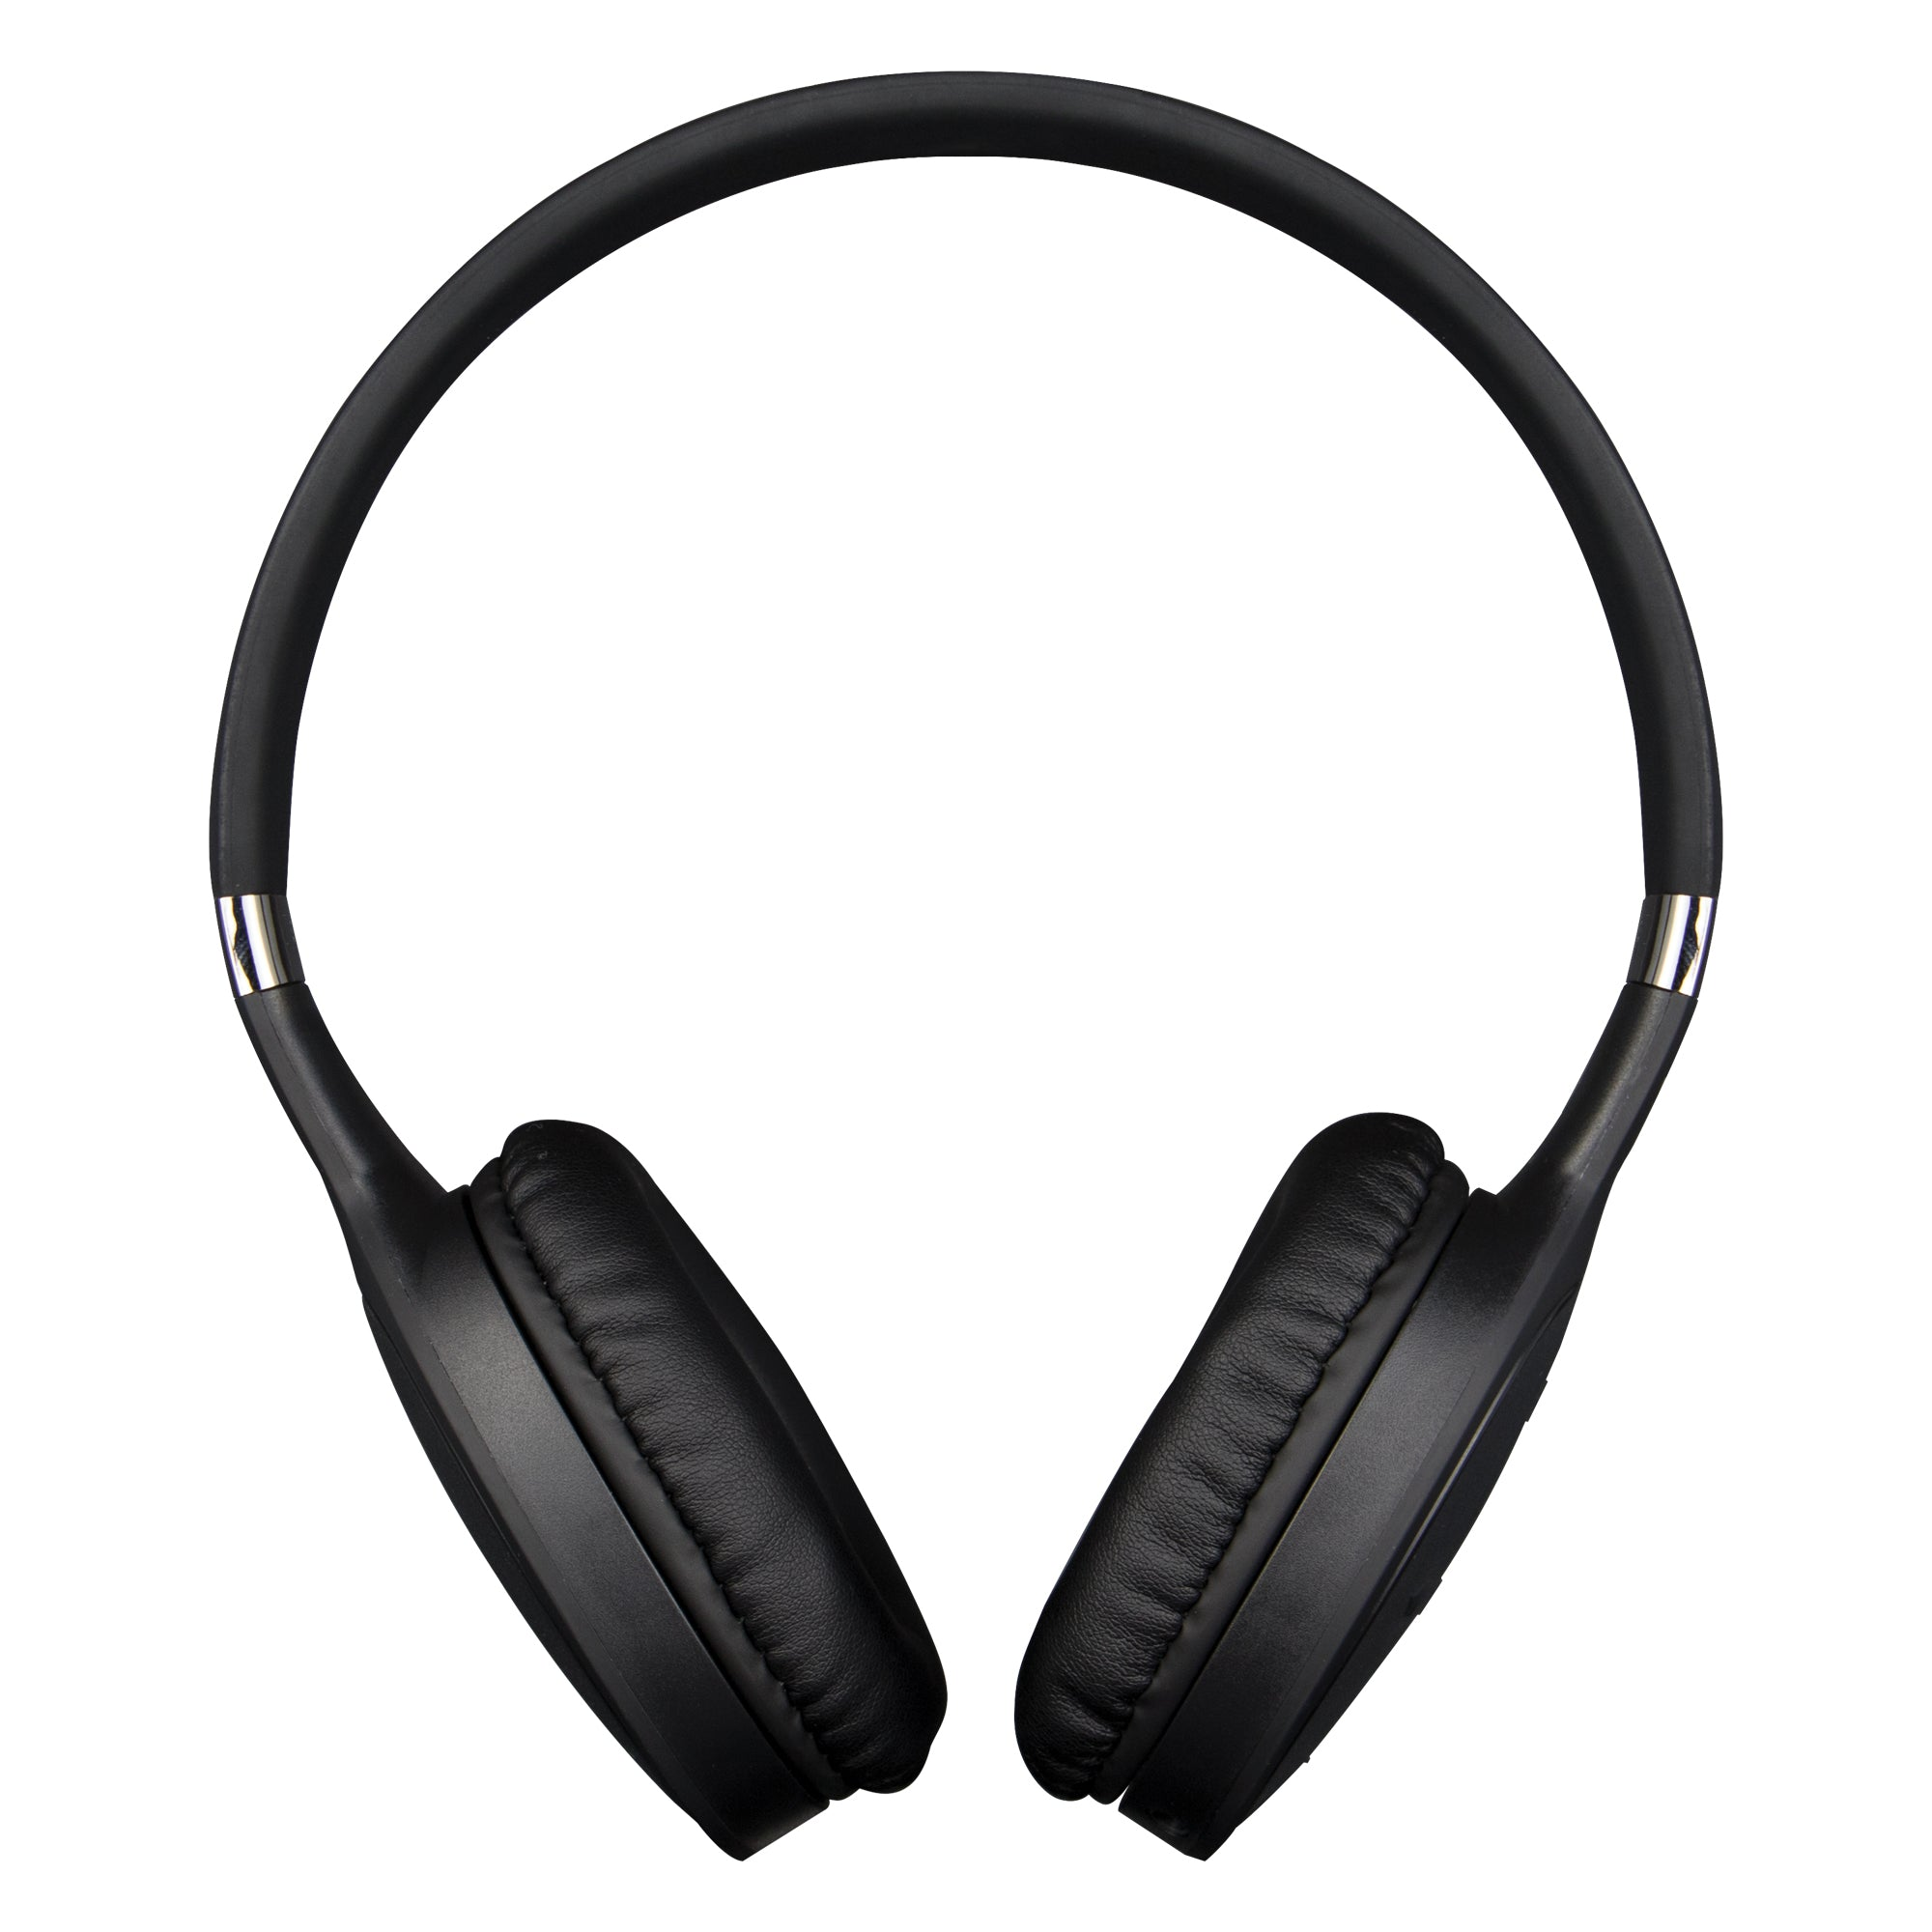 iT7xr Headphones Side View